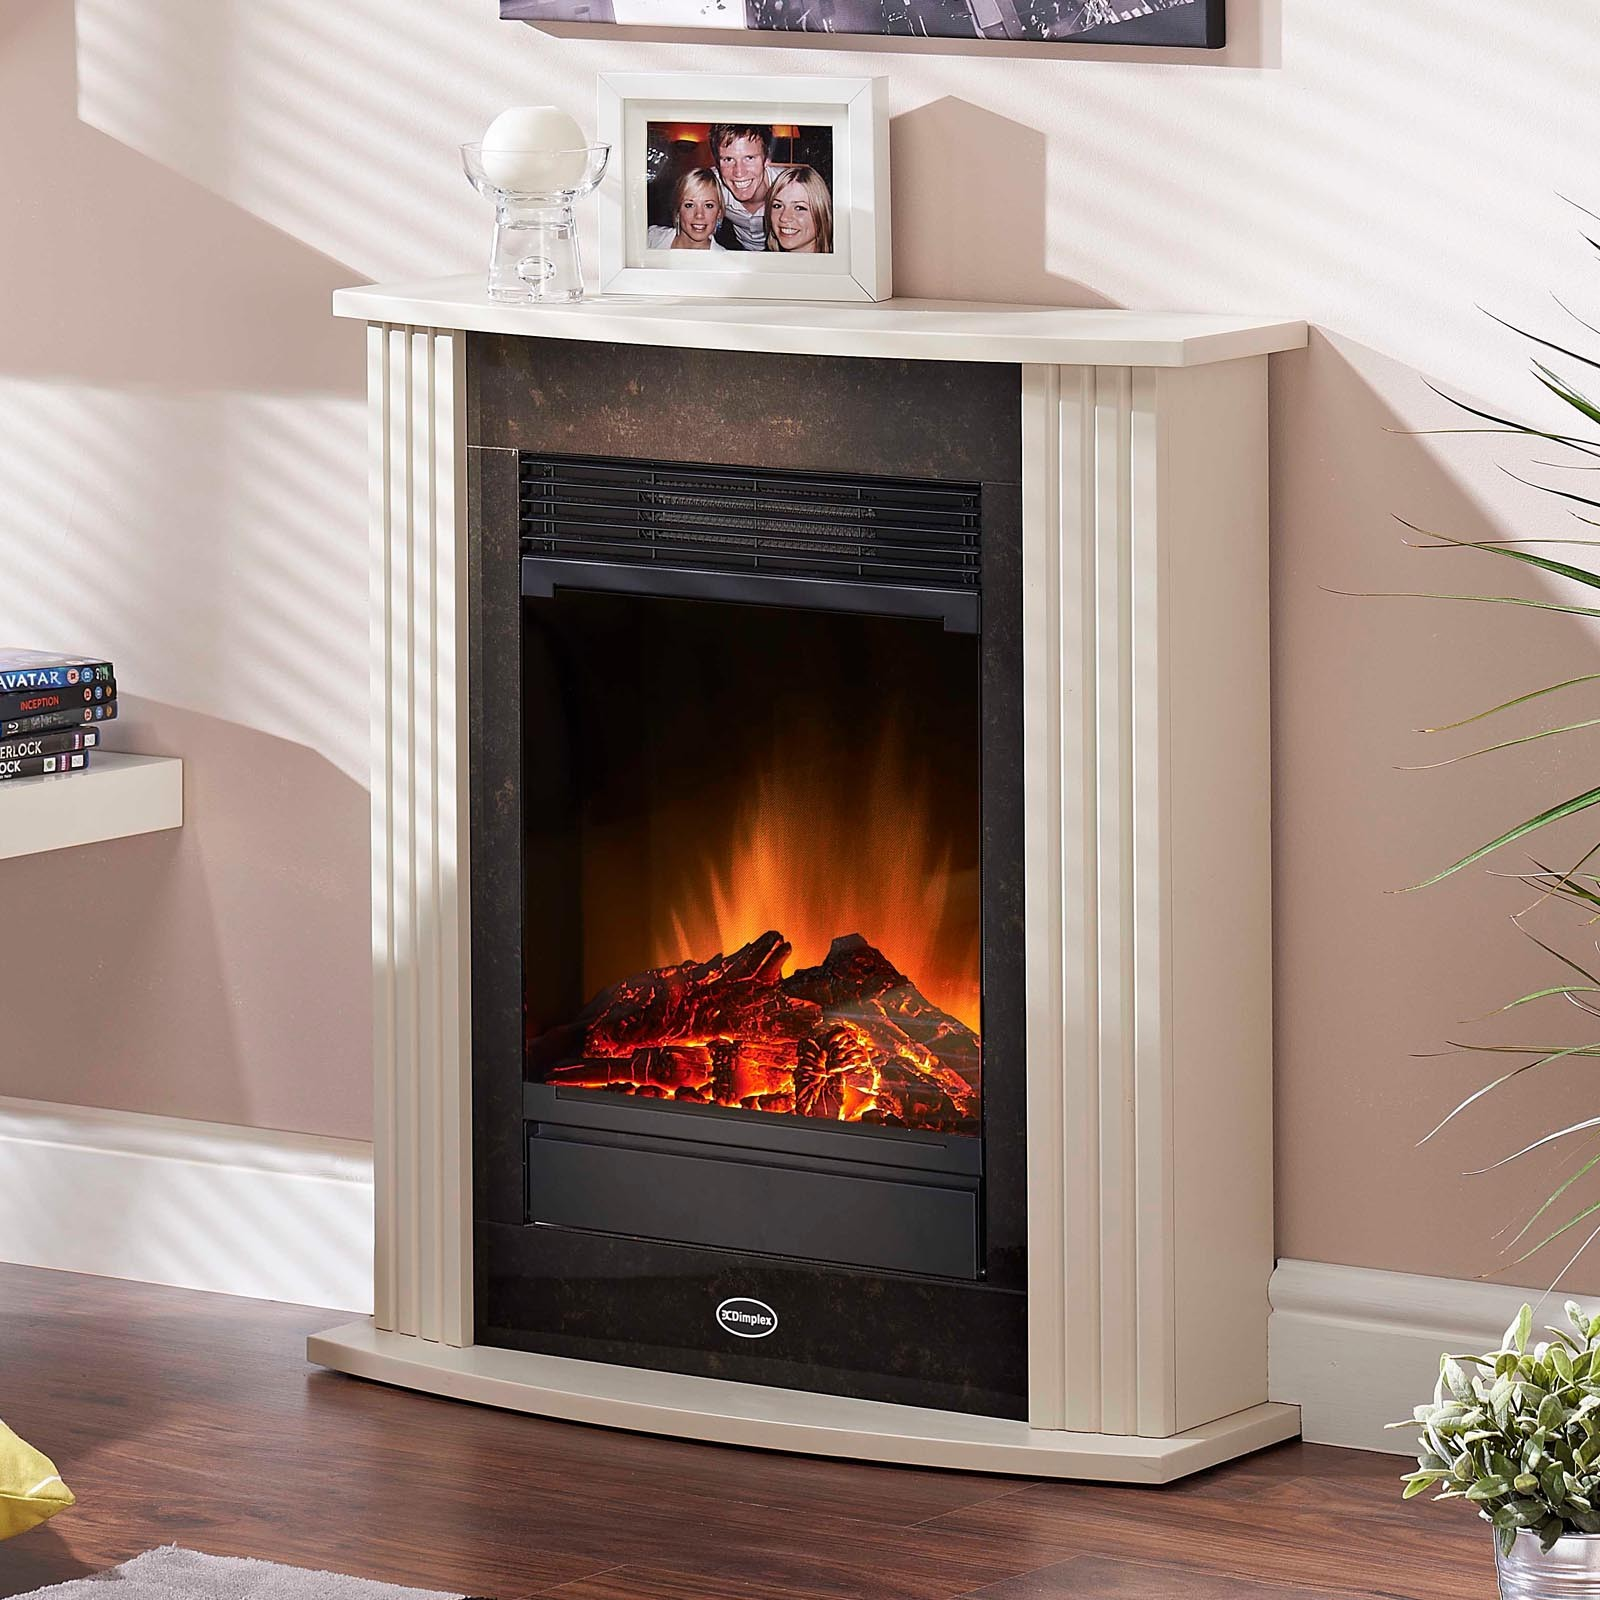 We have a selection of smaller complete electric fireplace suites perfect for small living spaces for further information contact us today at sales@fireplaces4life.co.uk product